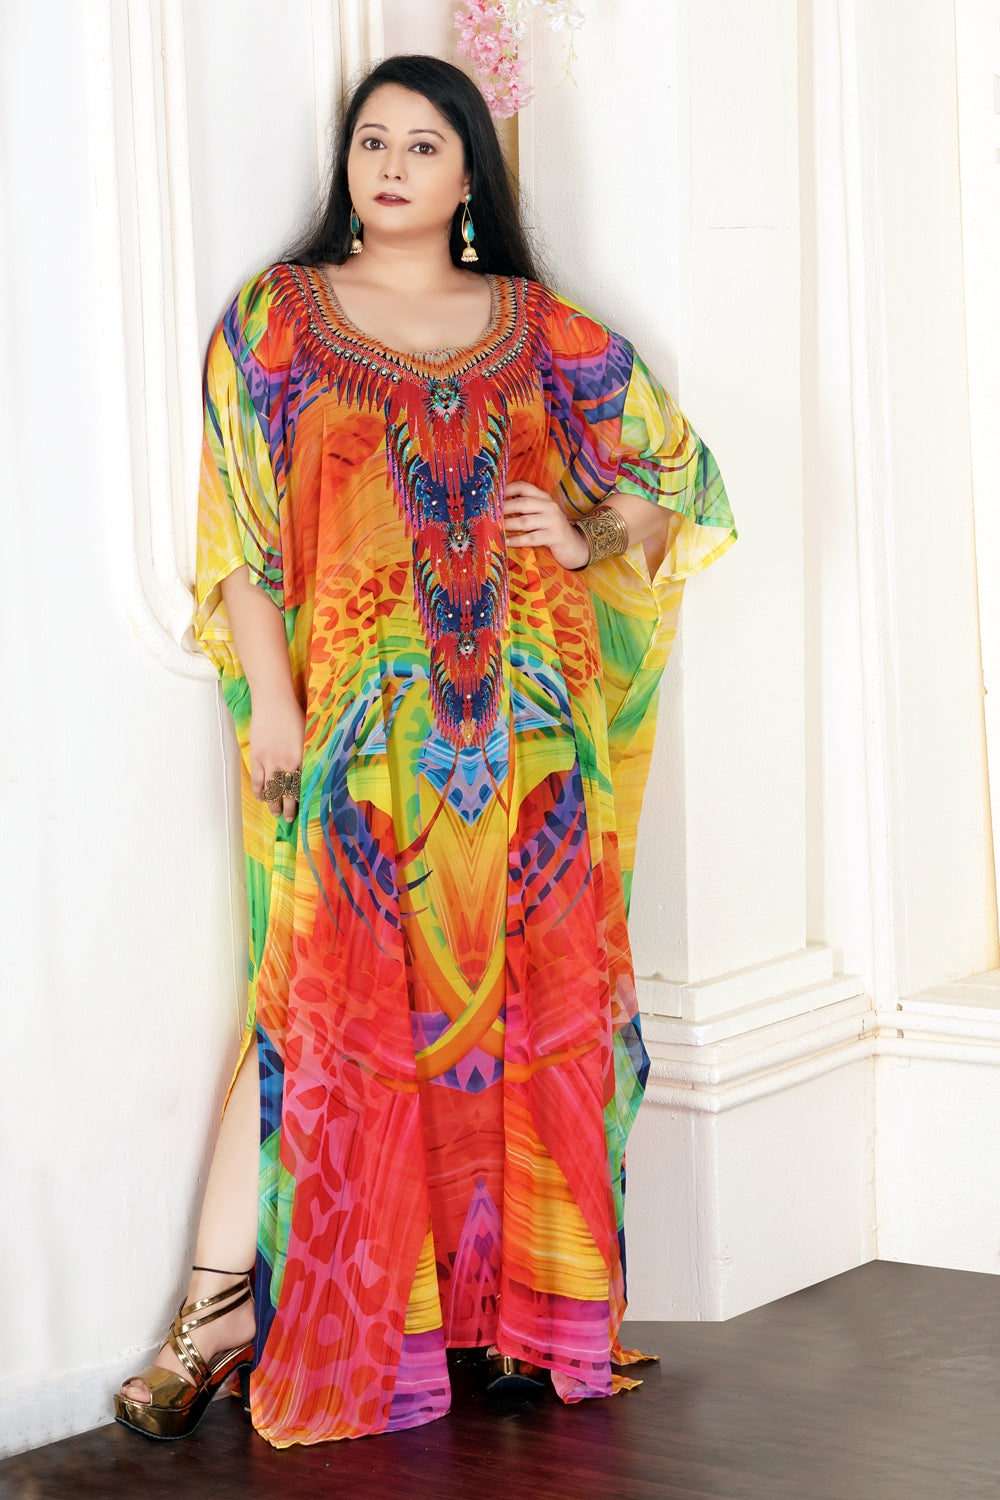 Elegance over time with light embellished self-print over cheap kaftan to express